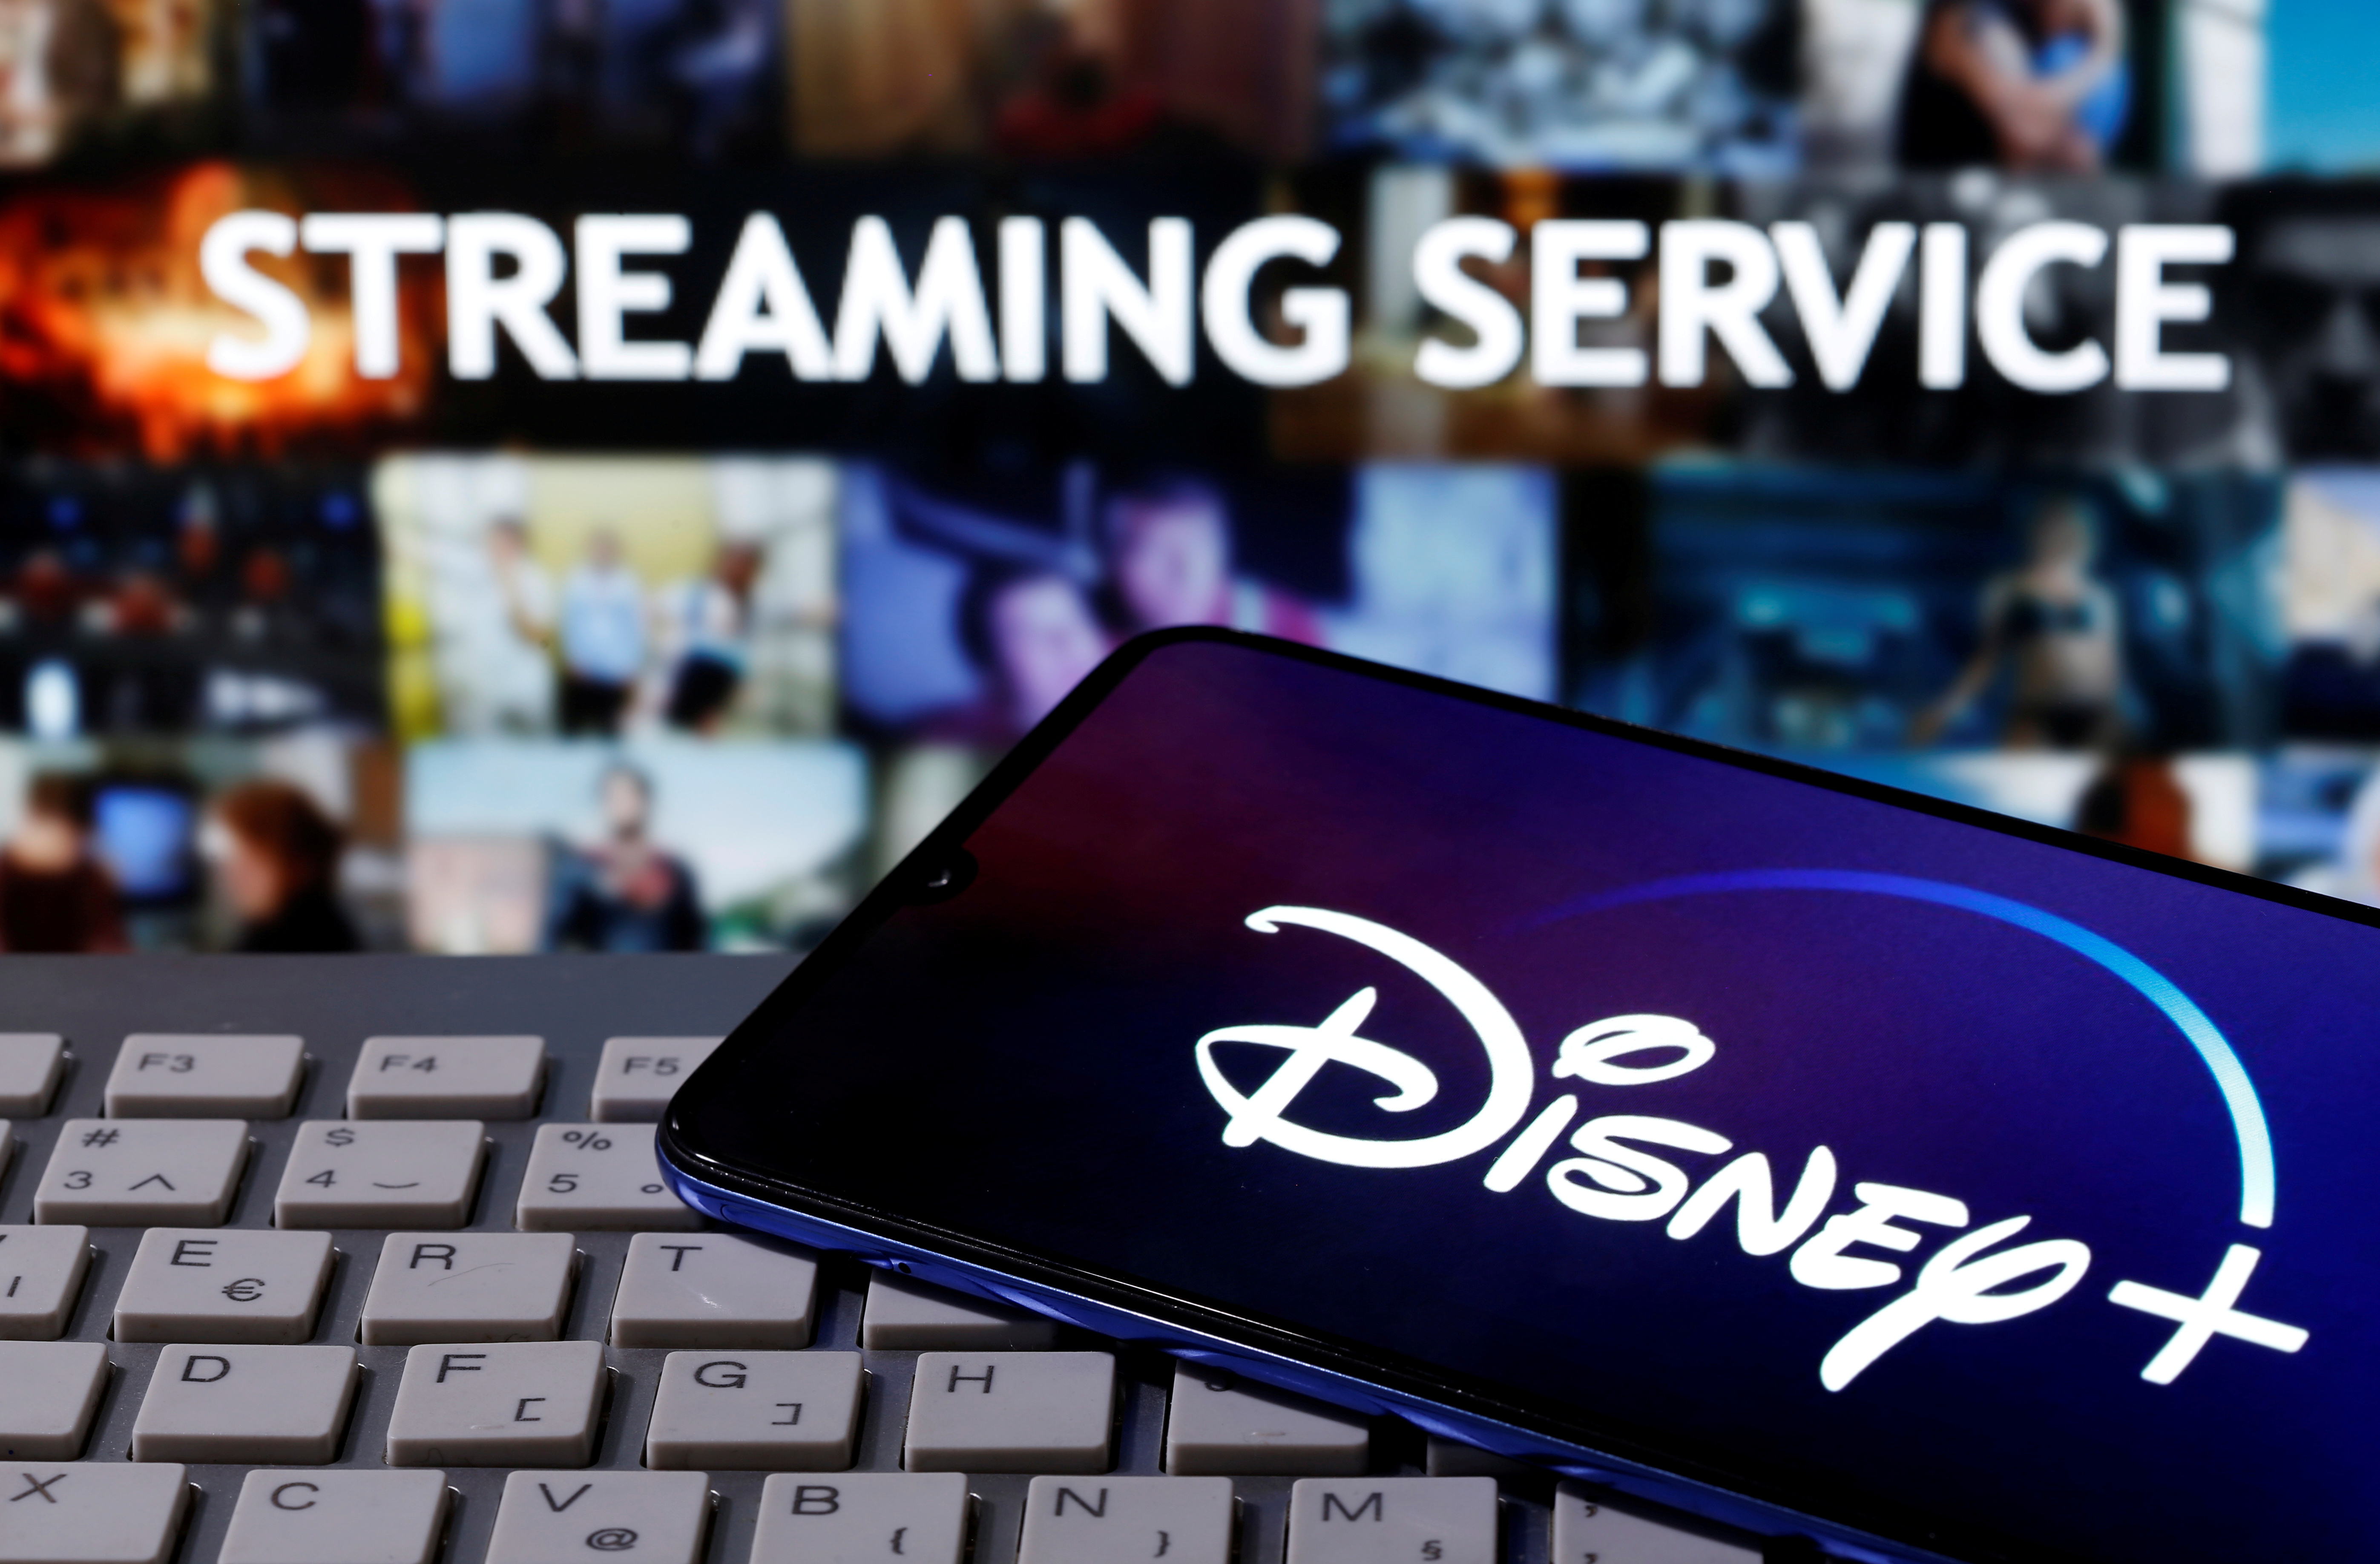 """A smartphone with displayed """"Disney"""" logo is seen on the keyboard in front of displayed """"Streaming service"""" words in this illustration taken March 24, 2020. REUTERS/Dado Ruvic"""